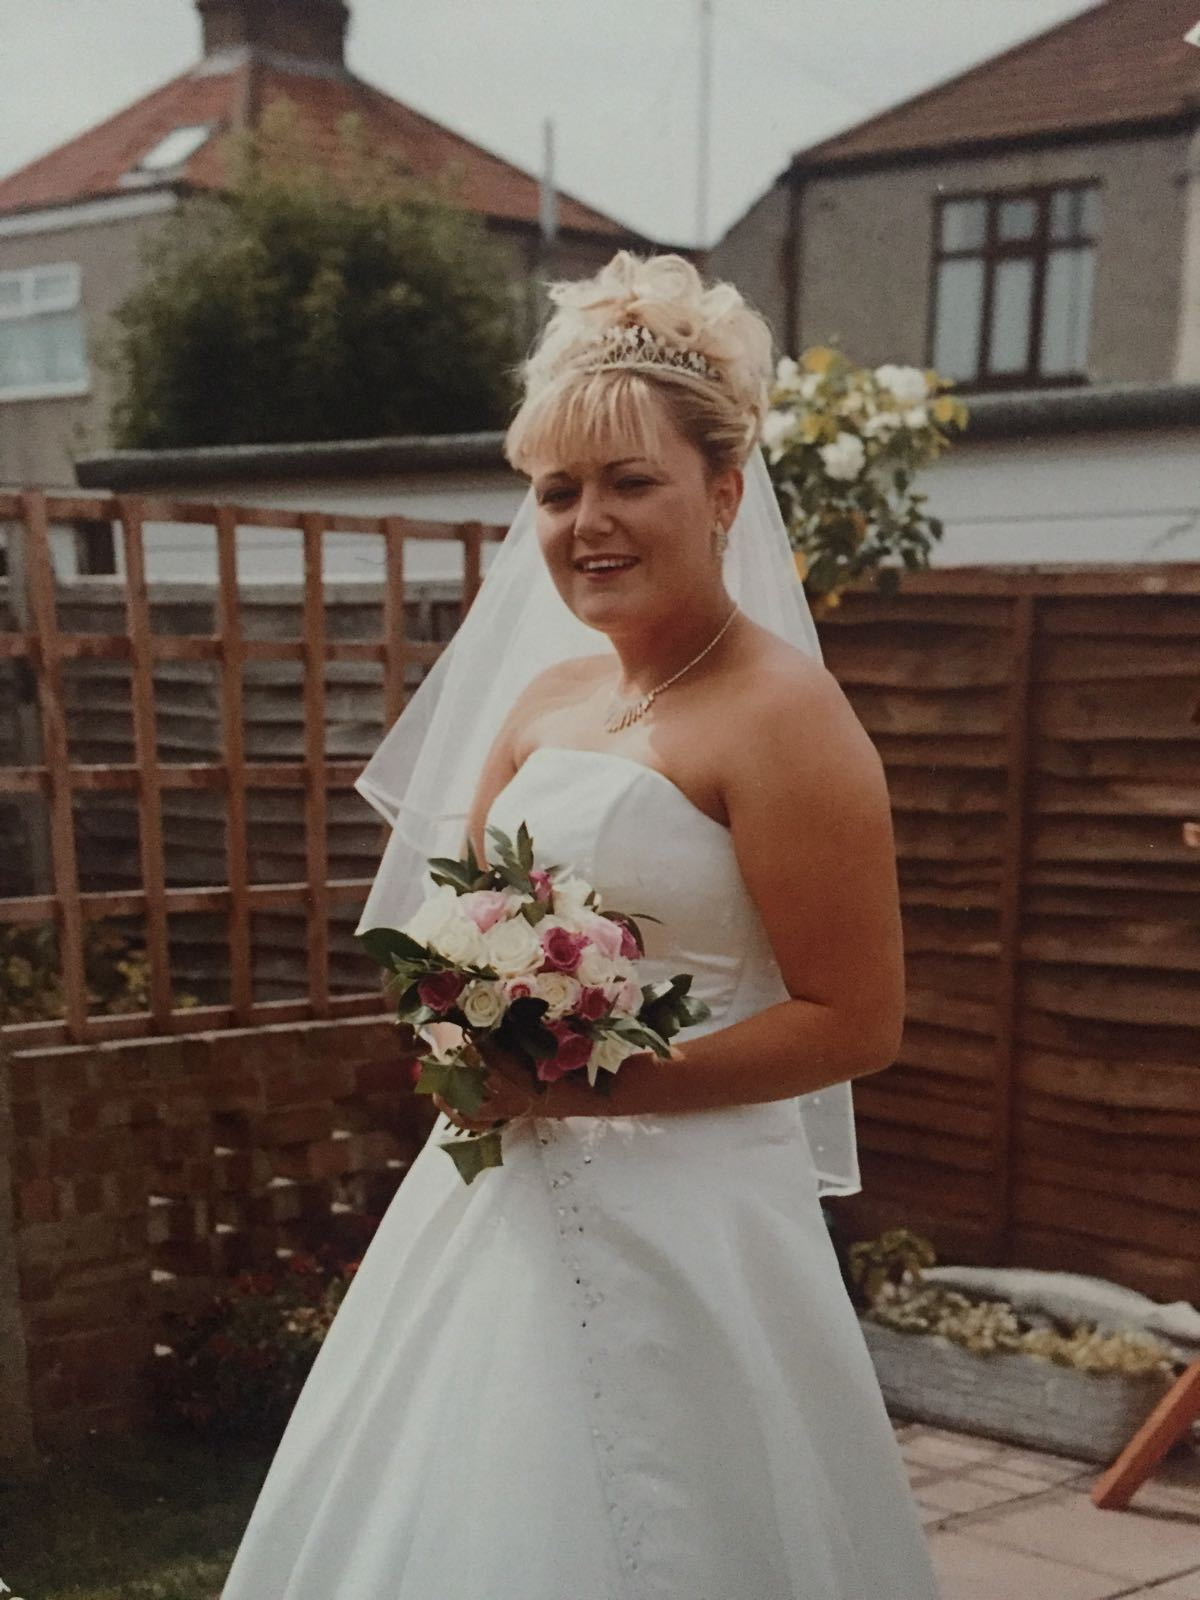 Ben's mum, Laura, passed away aged 40 from braqin cancer